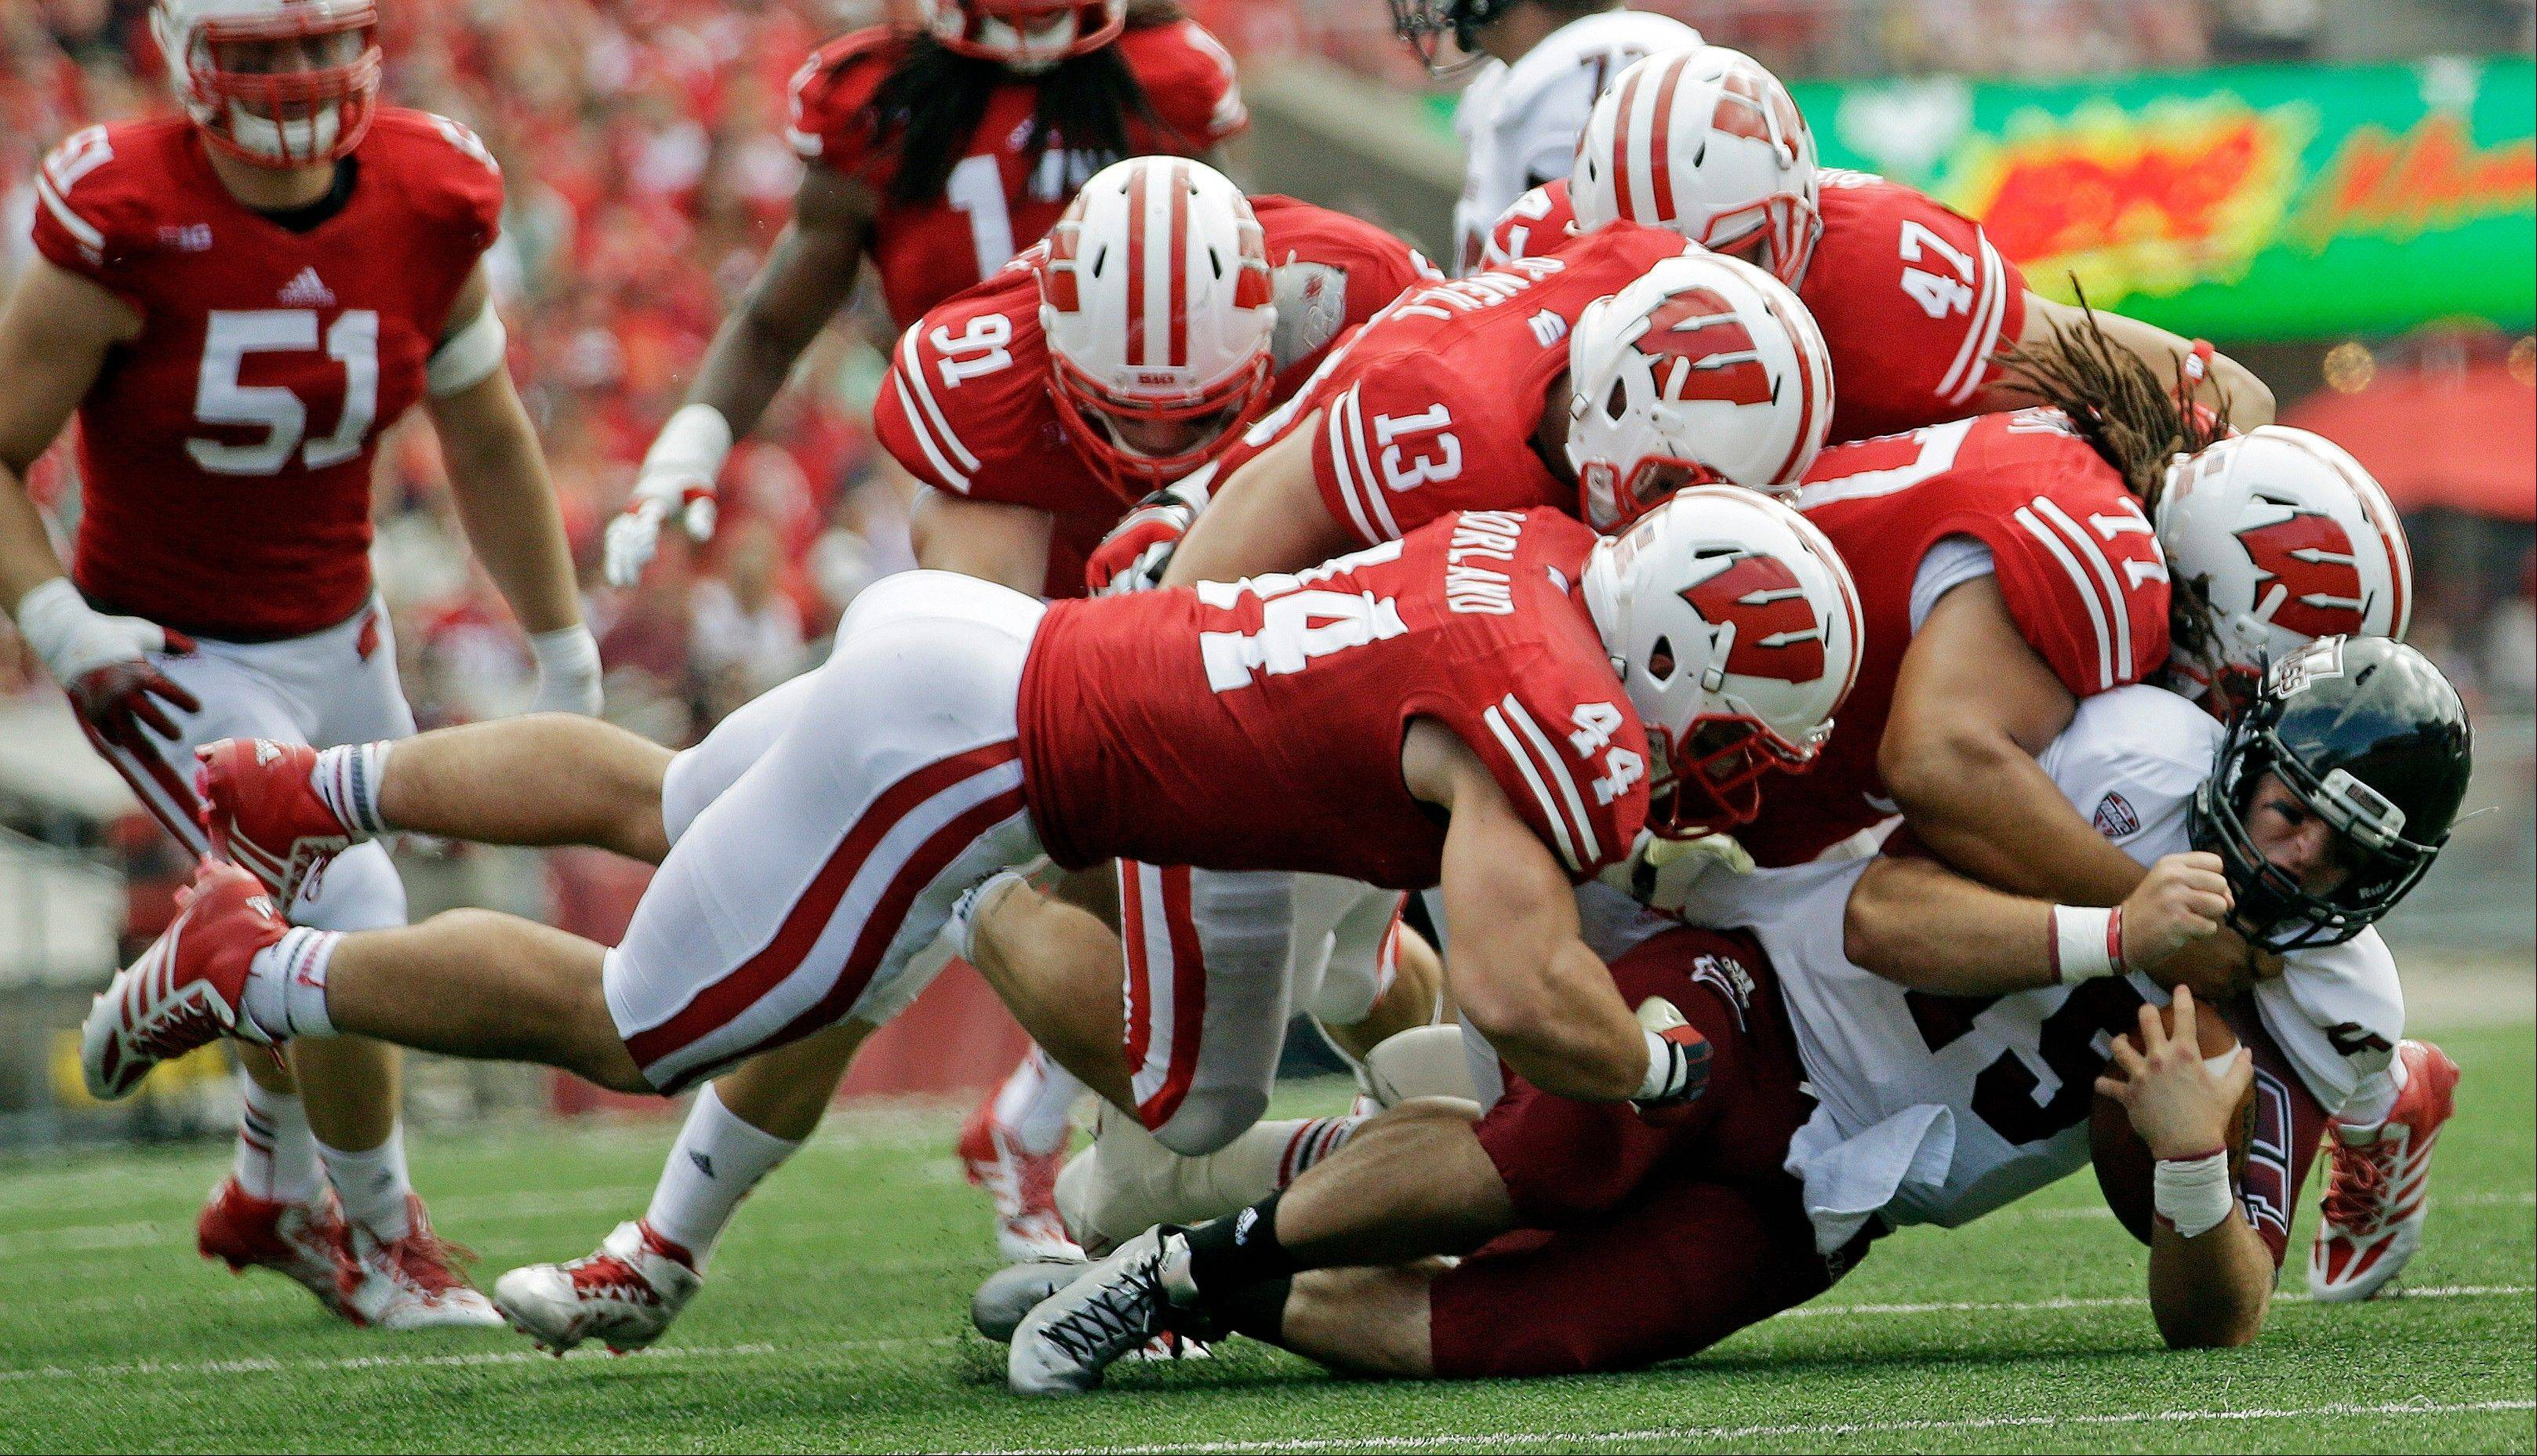 Wisconsin's new defense opens well